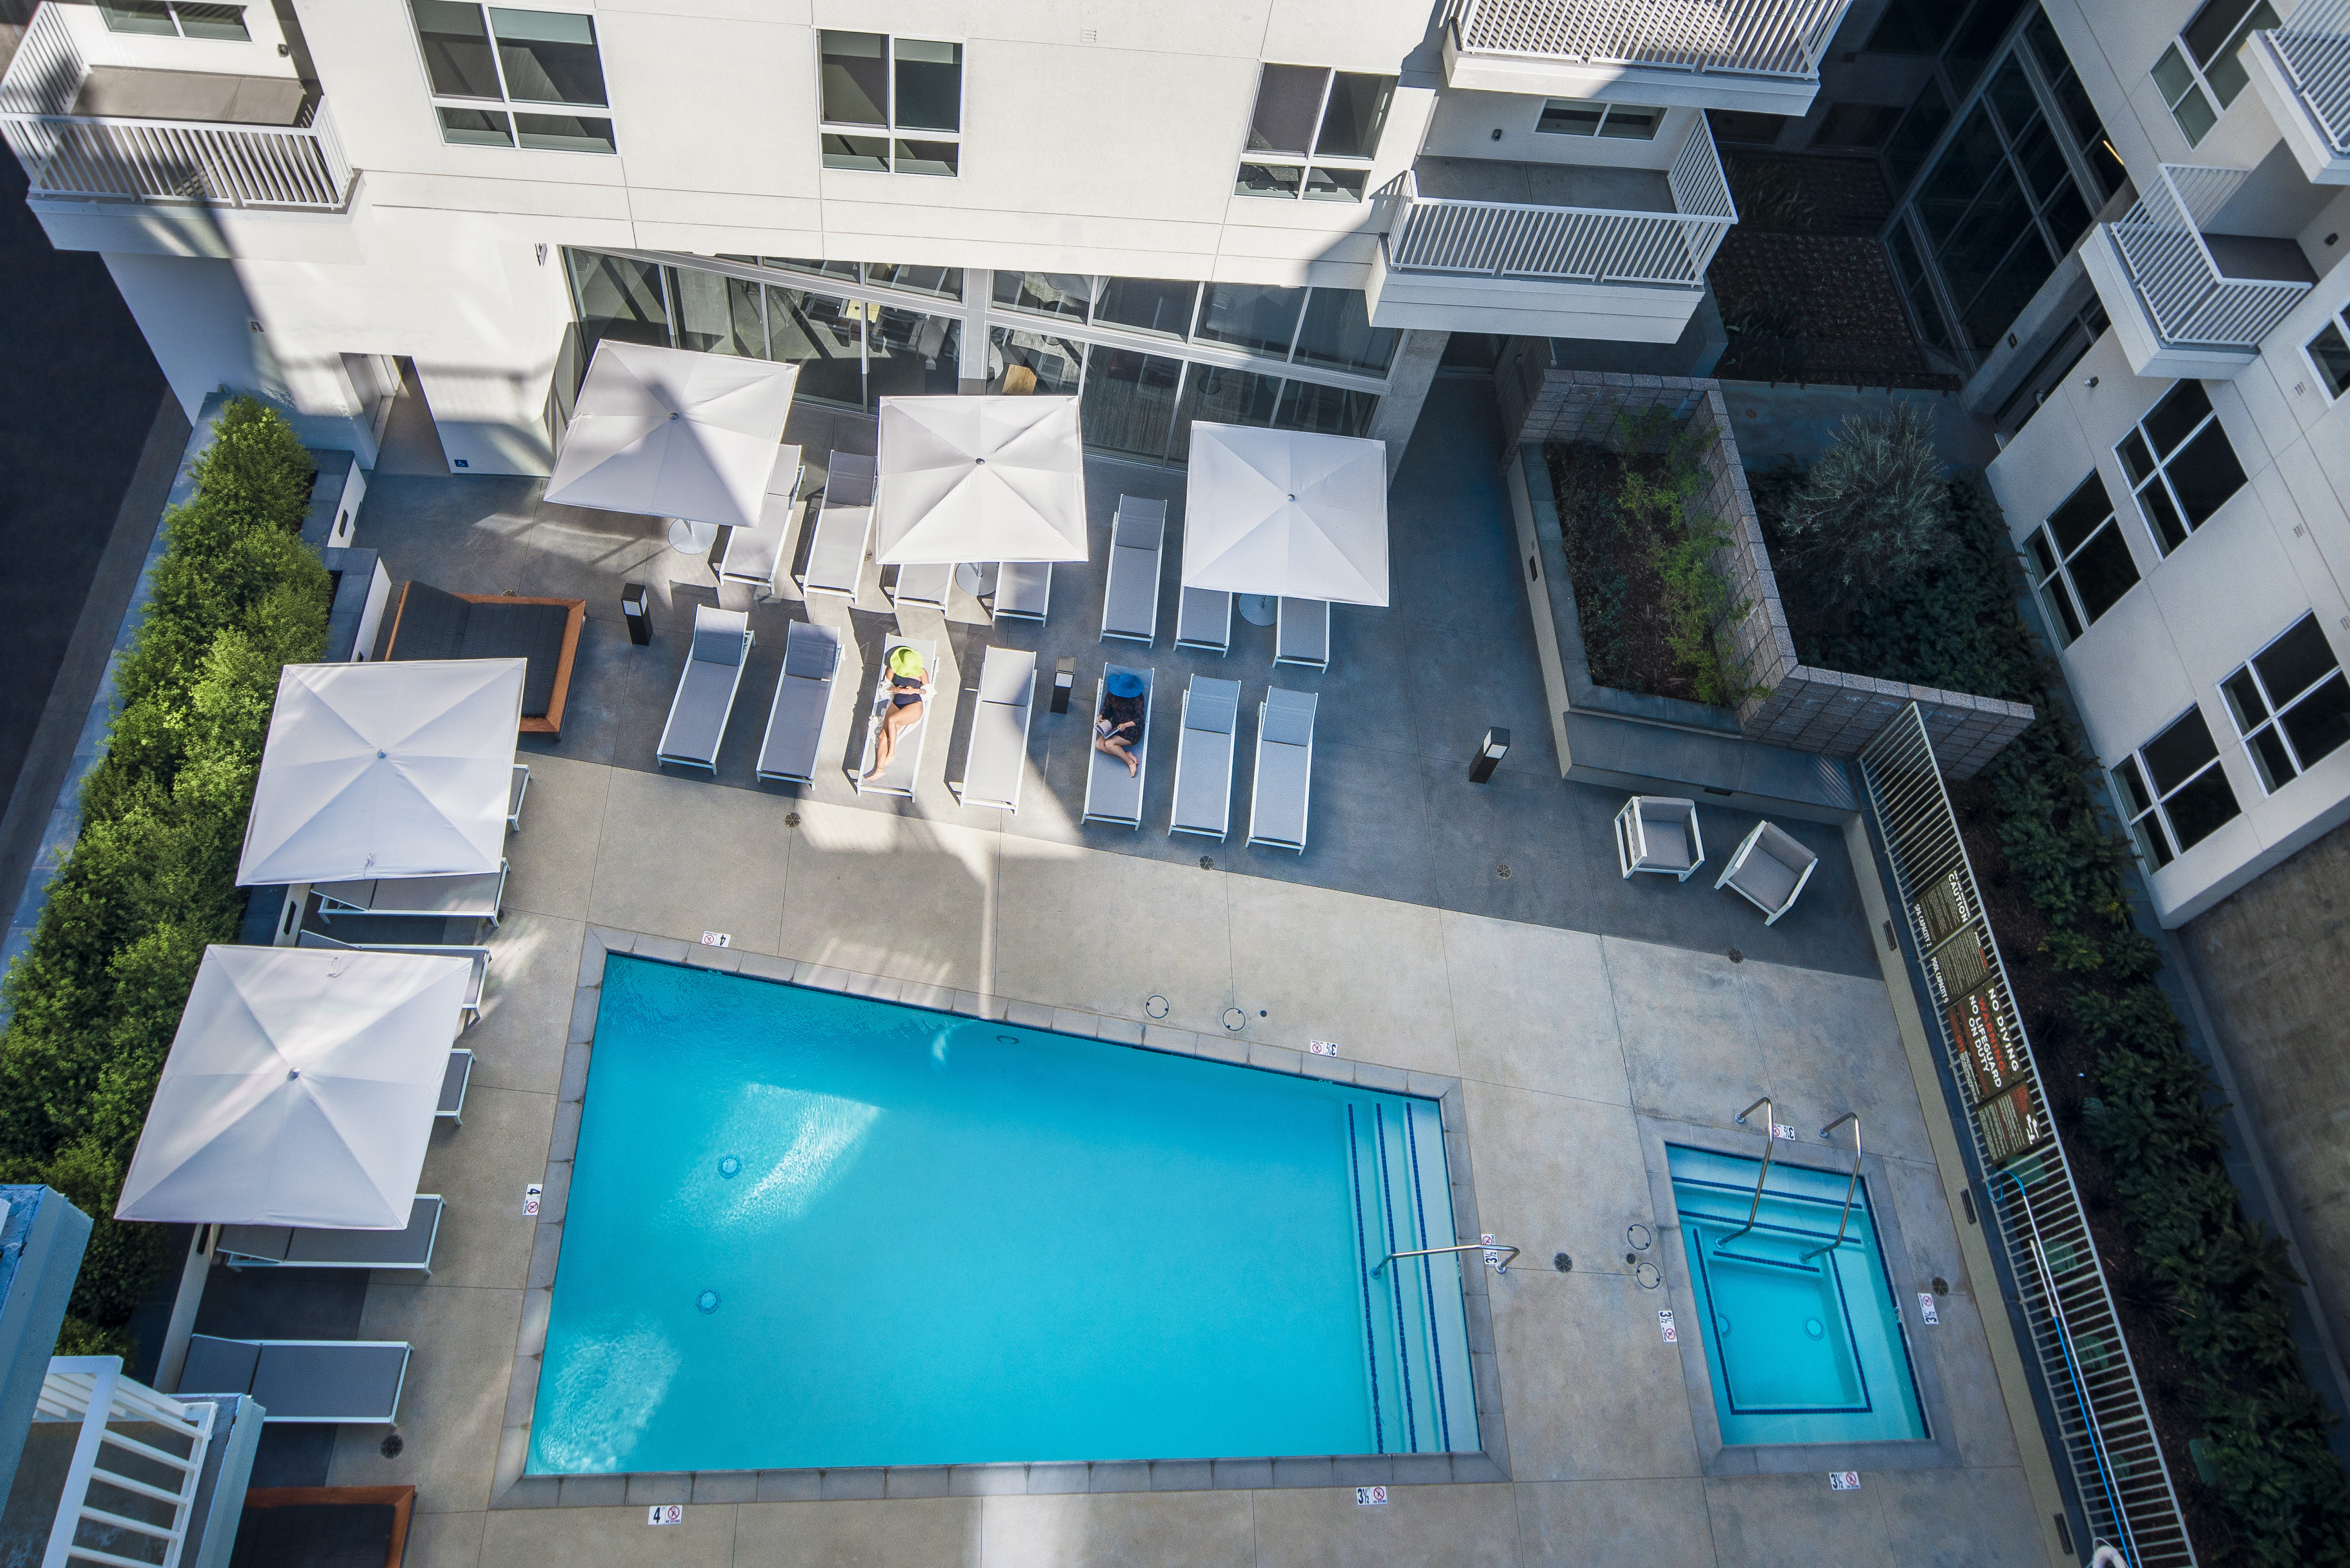 View of pool from above